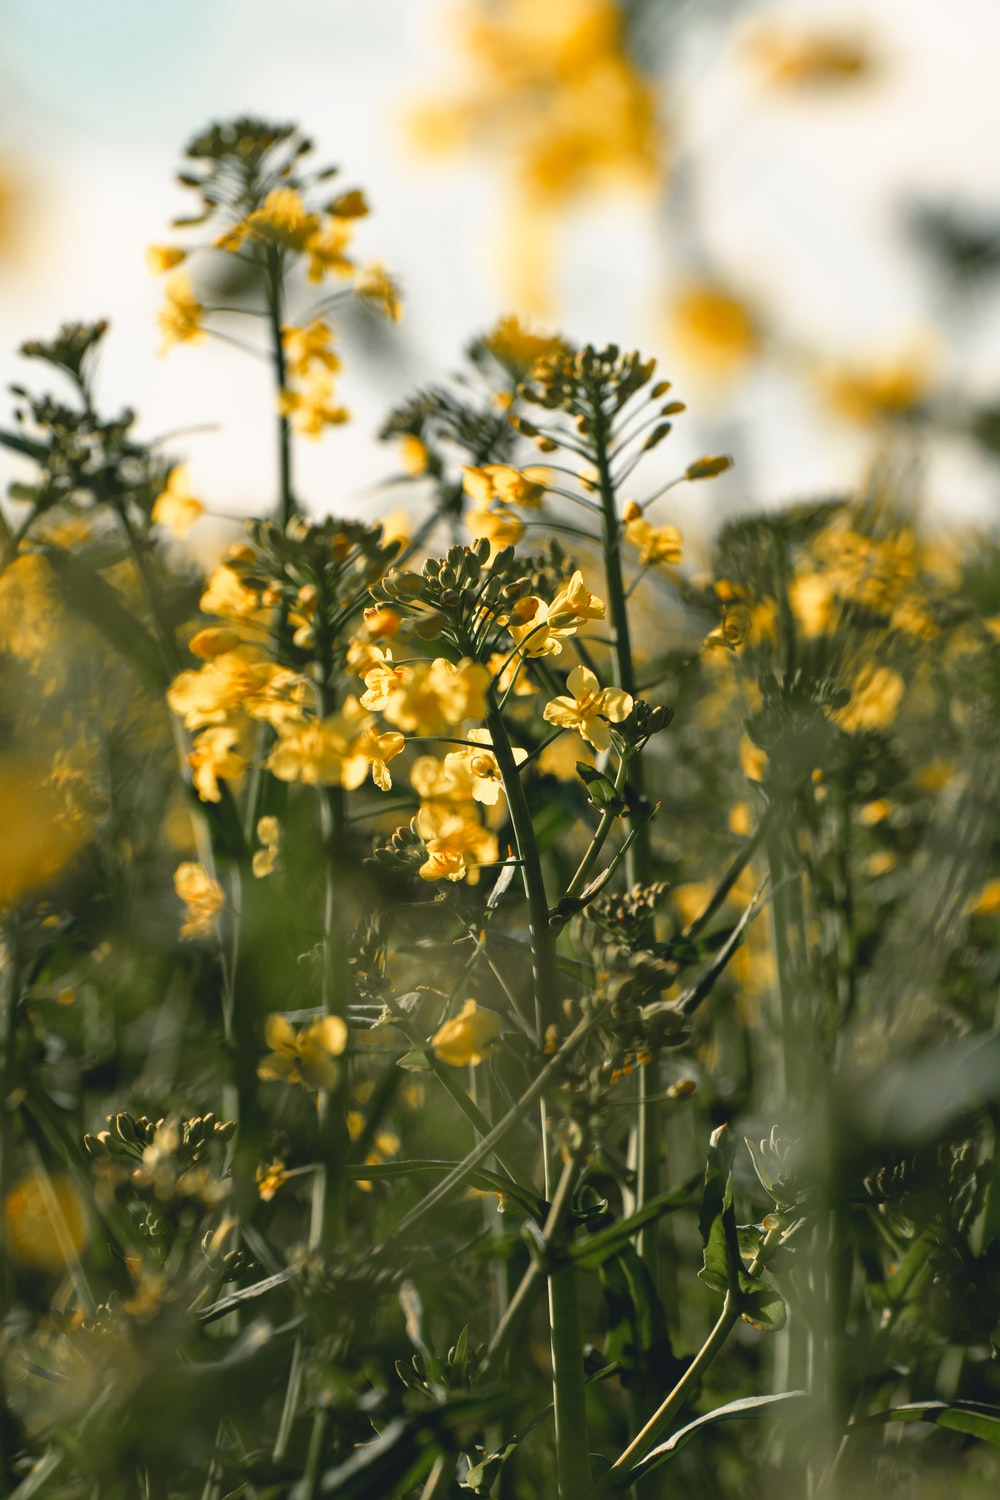 yellow flowers in tilt shift lens